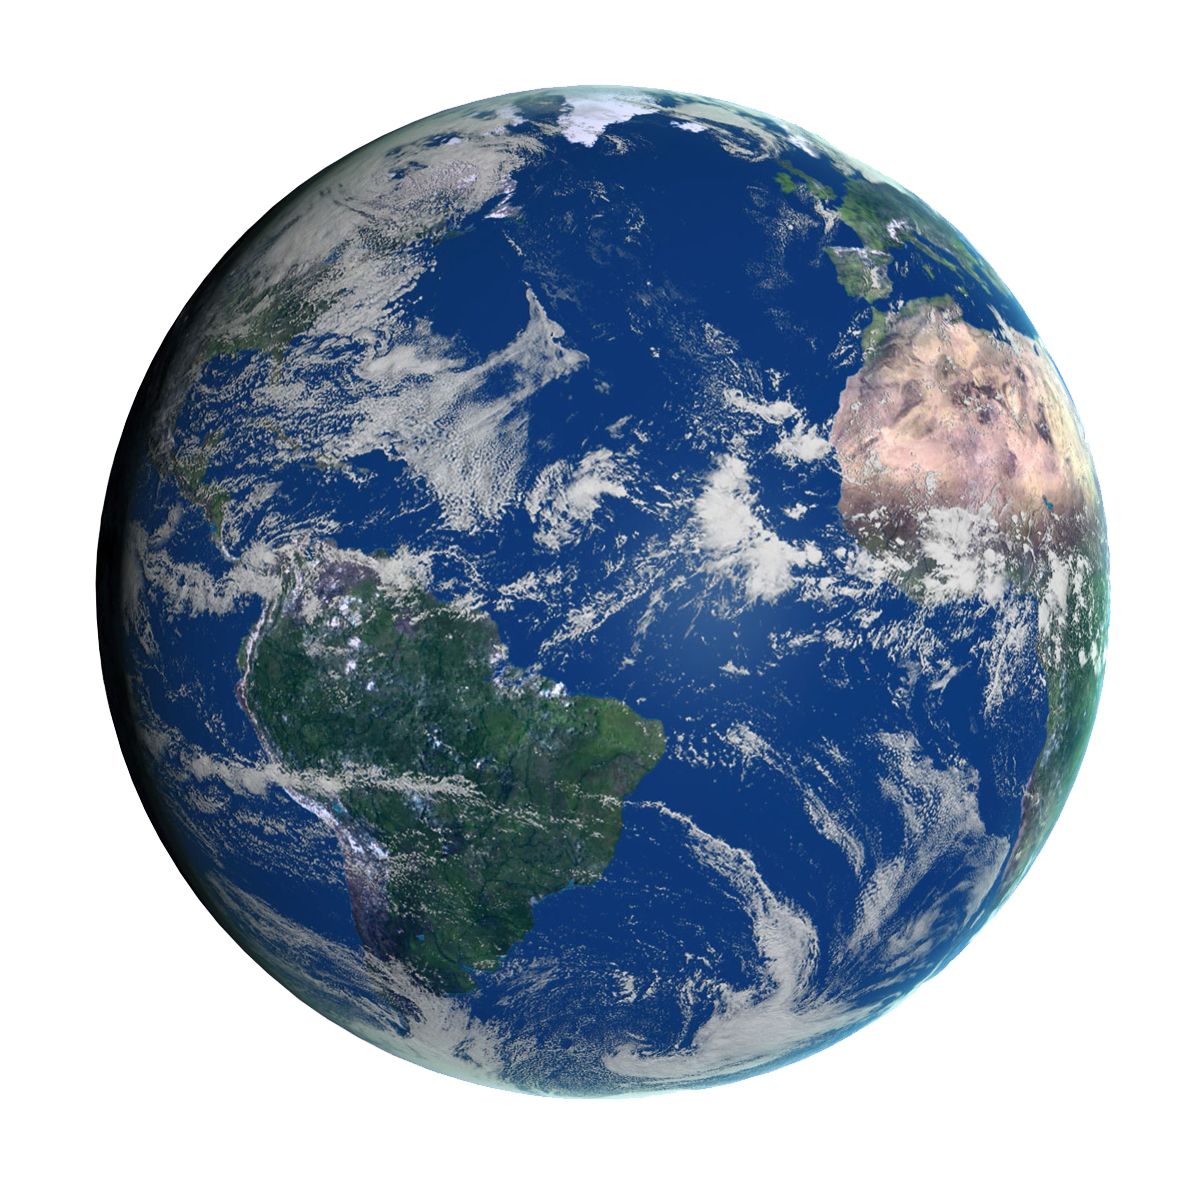 Earth transparent pictures free. World png image image free library